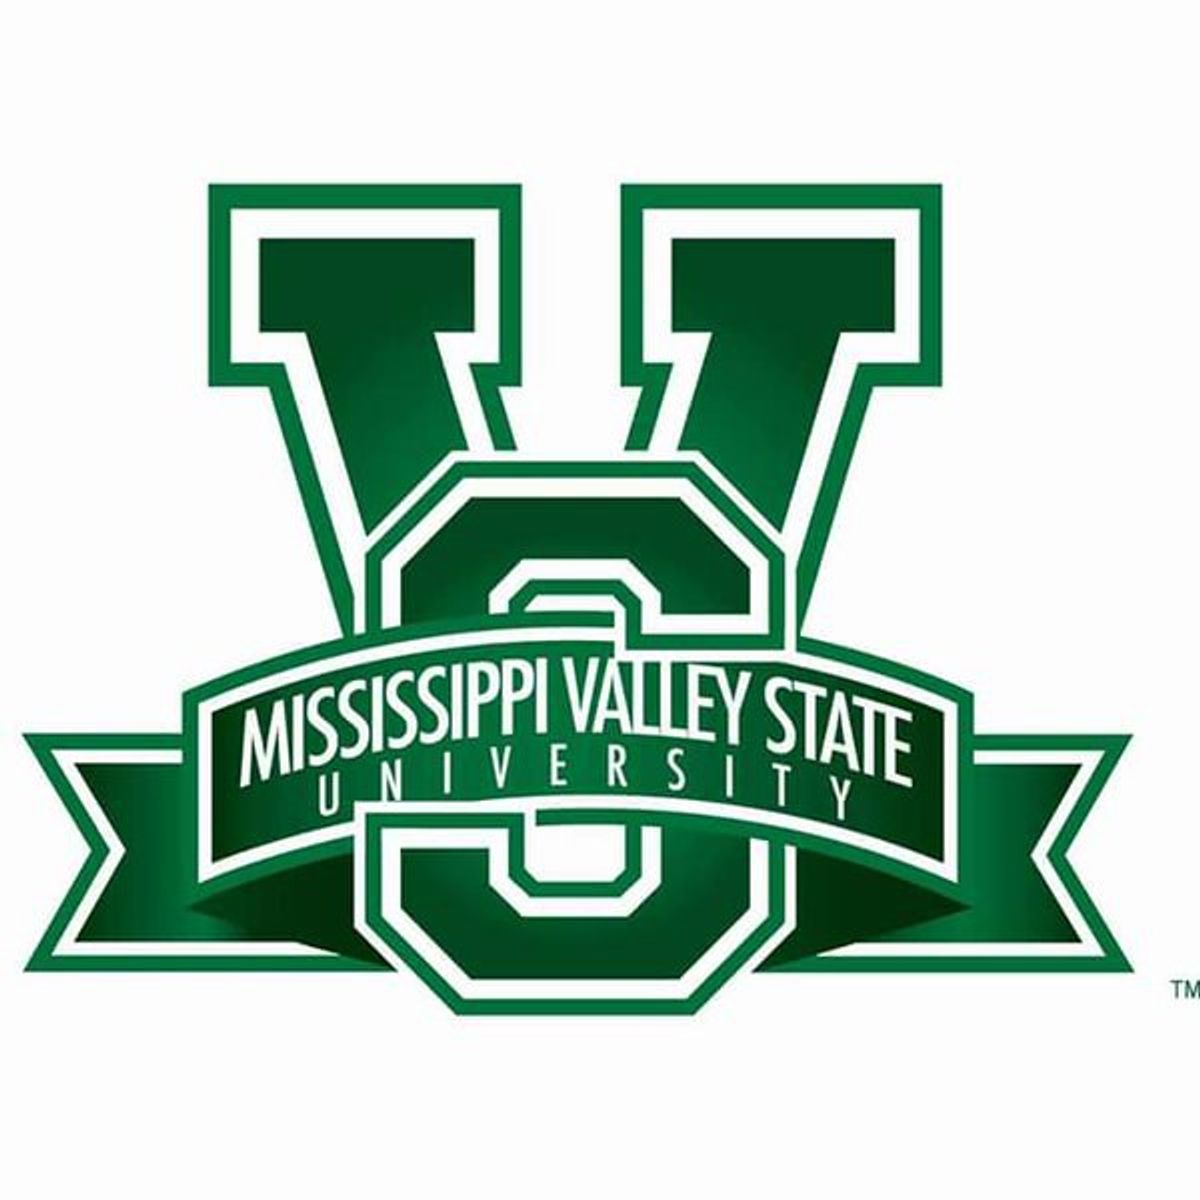 Odyssey At MVSU Is On The Rise!